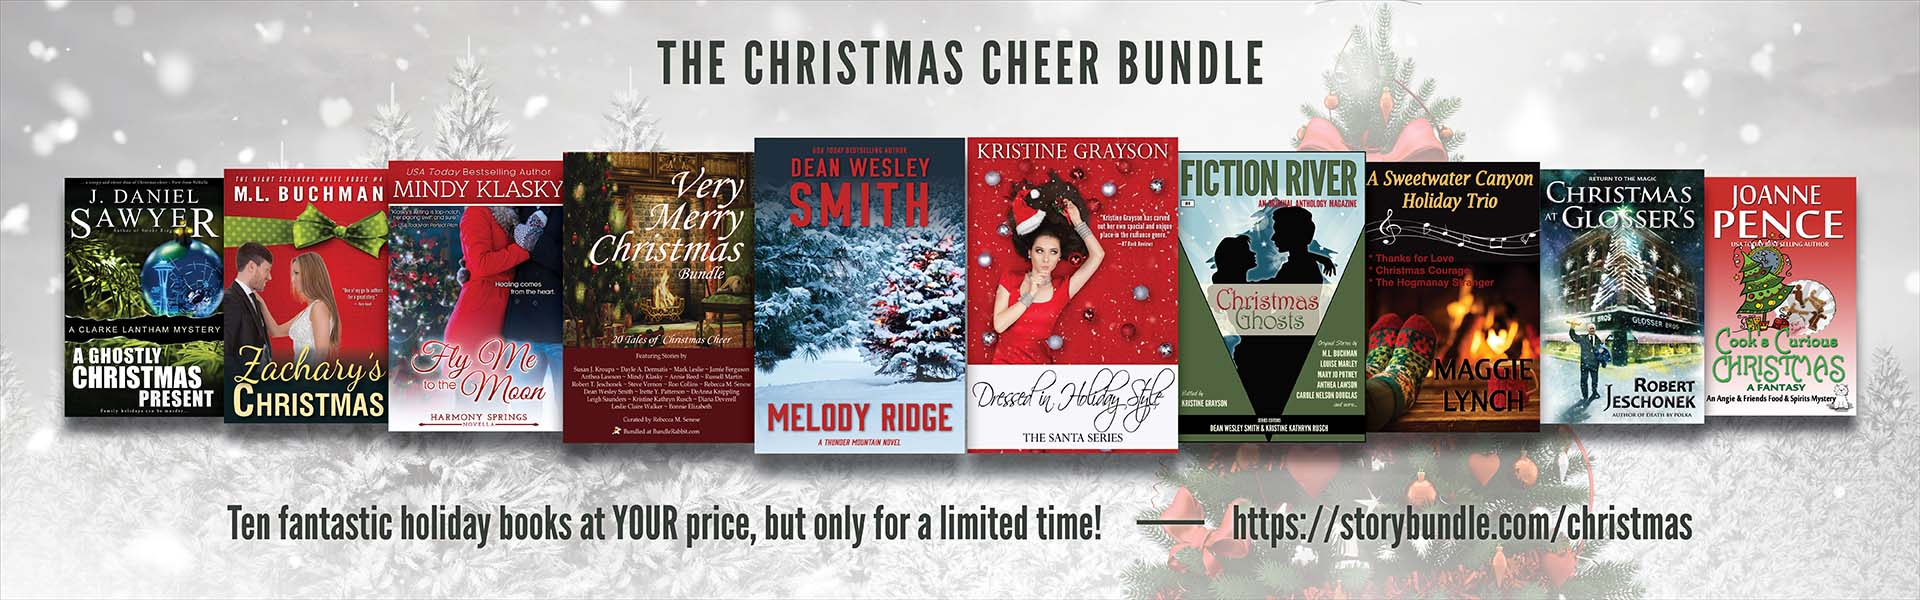 picture of 10 book covers included in the Christmas Cheer story bundle